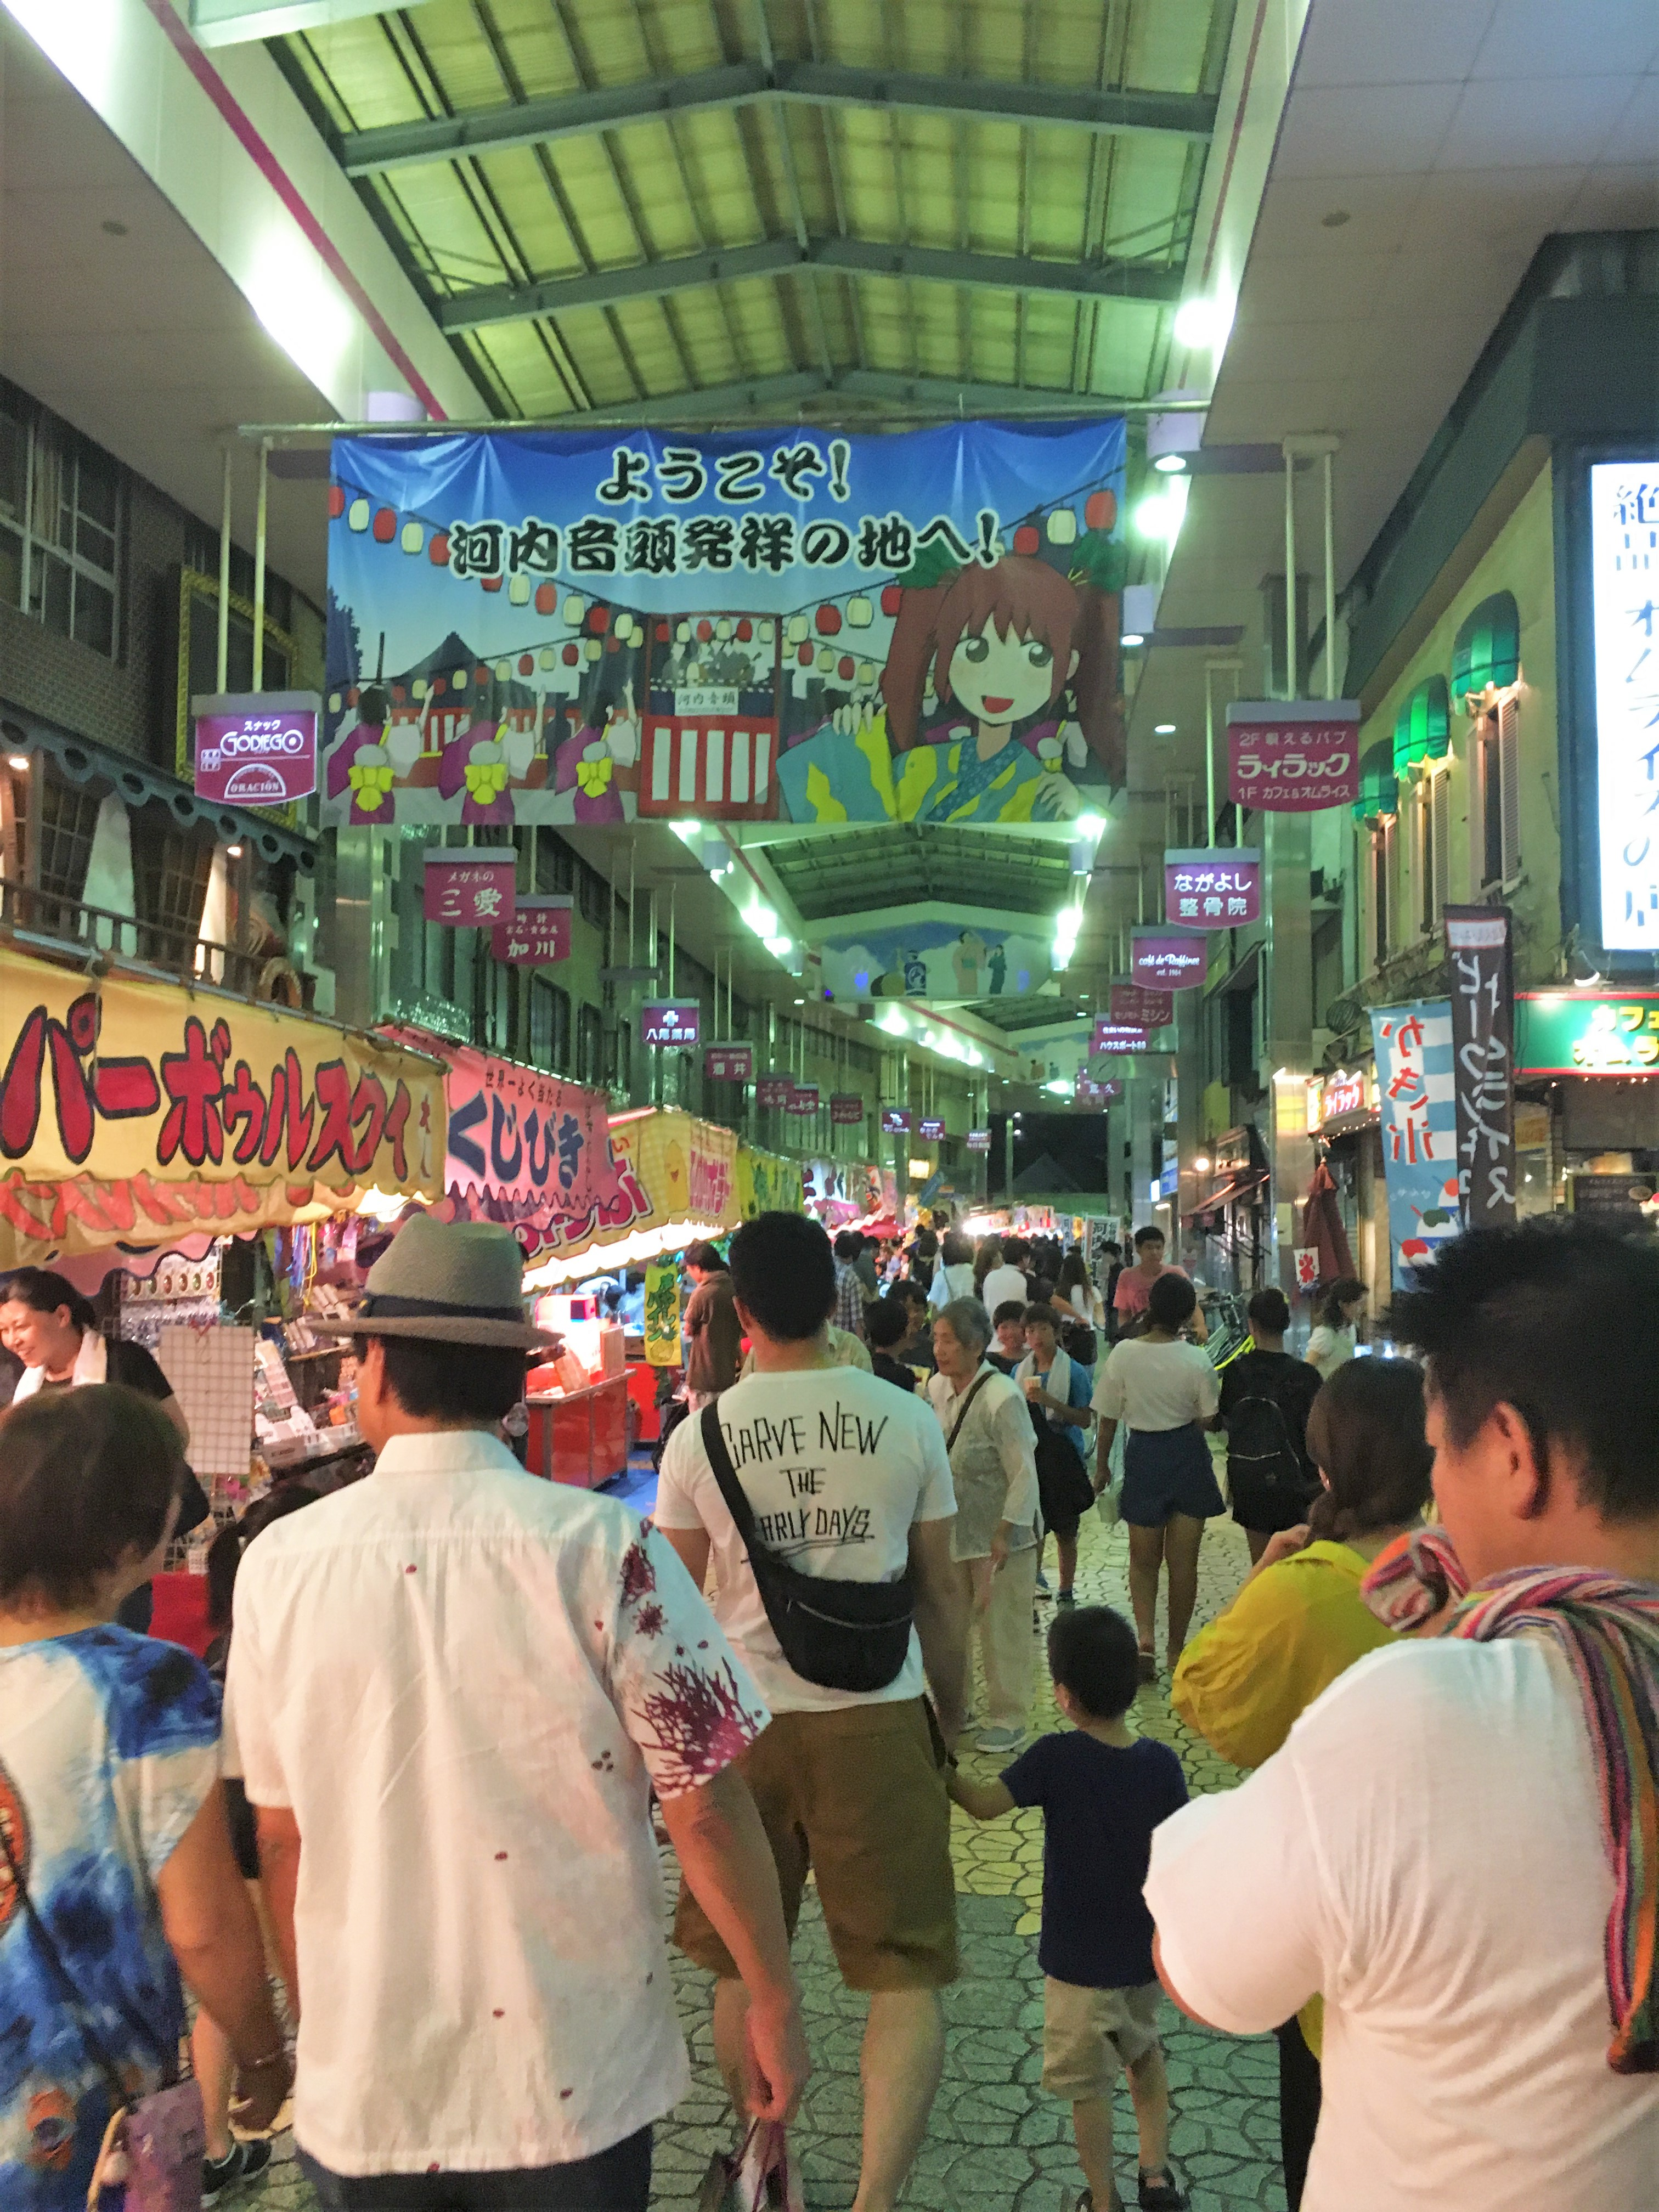 People attending the street festival for Kawachi Ondo, a kind of bon odori